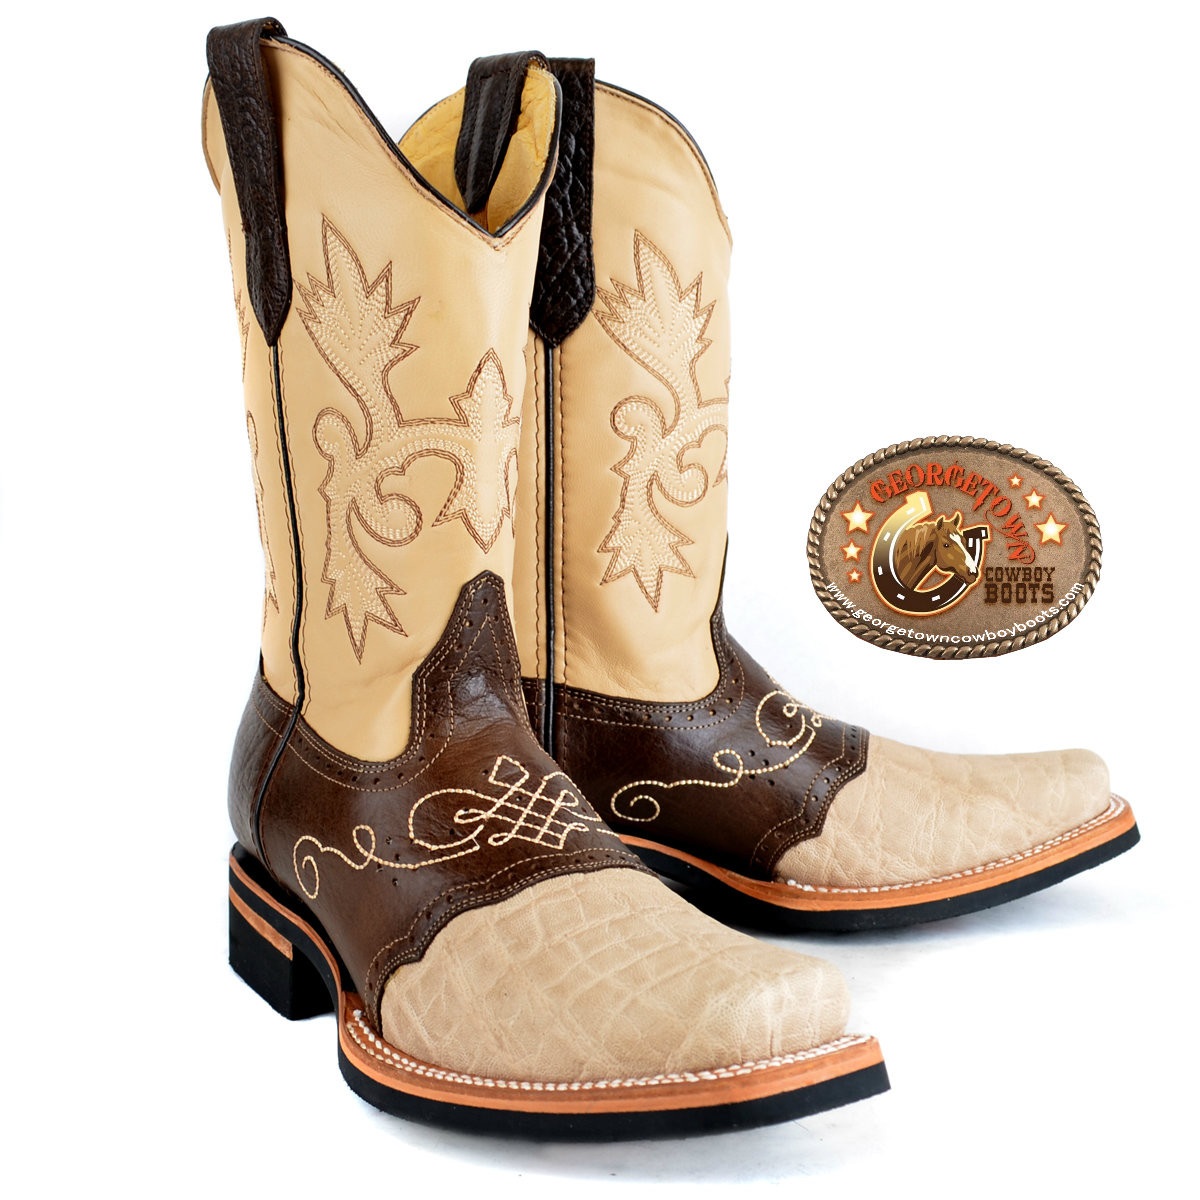 97f2b0d8c79 King Exotic Elephant Boots Square Toe With Saddle Vamp Oryx/Brown